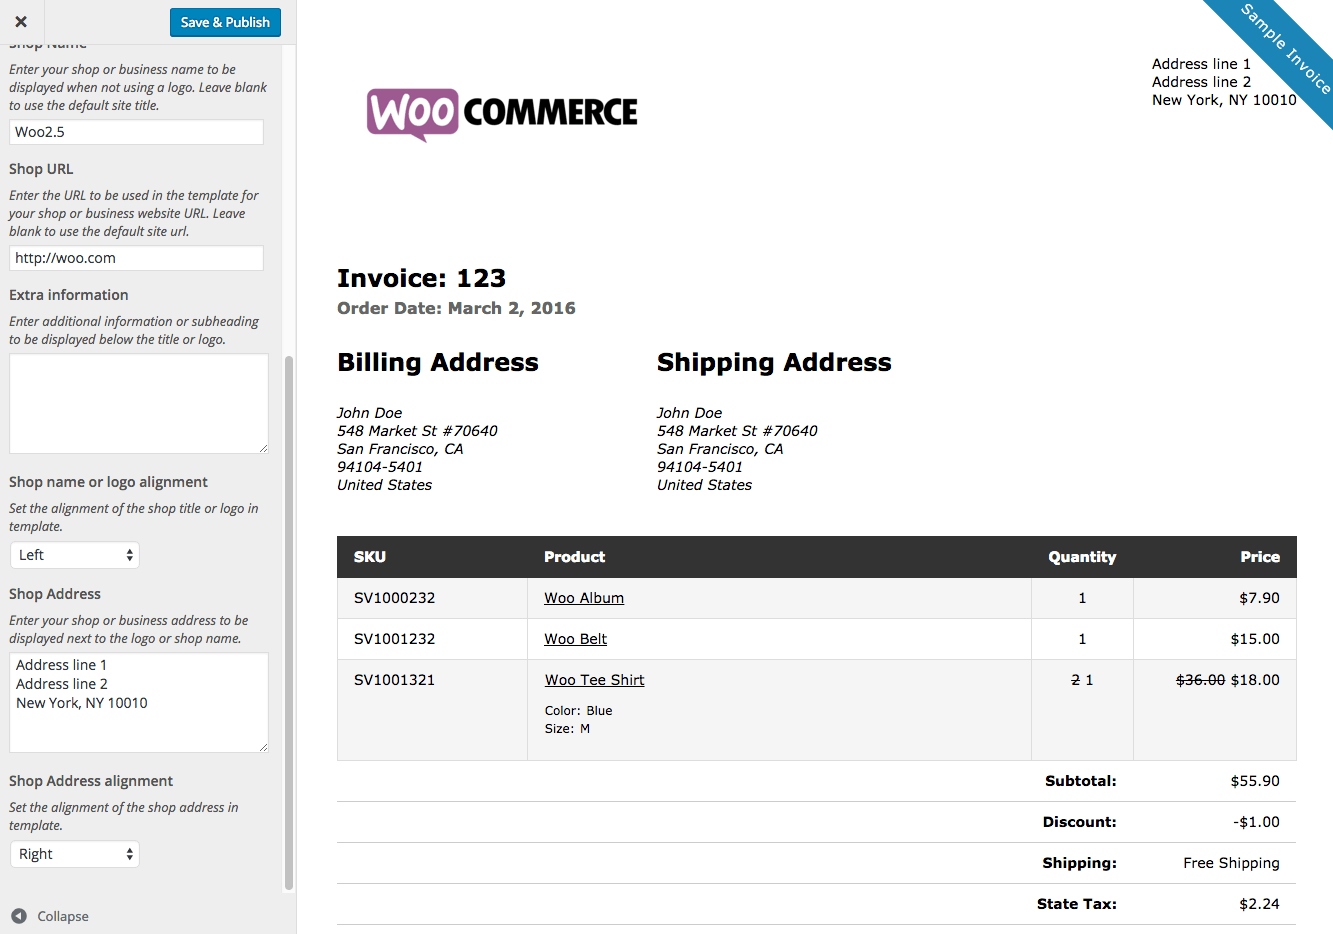 Picnictoimpeachus  Stunning Woocommerce Print Invoices Amp Packing Lists  Woocommerce Docs With Licious Woocommerce Print Invoices  Packing Lists Customizer With Easy On The Eye Builders Invoice Template Also Tax Invoice Template Nz In Addition Invoices Uk And Charging Interest On Overdue Invoices As Well As Invoice Billing Software Free Download Additionally Invoice Format Pdf From Docswoocommercecom With Picnictoimpeachus  Licious Woocommerce Print Invoices Amp Packing Lists  Woocommerce Docs With Easy On The Eye Woocommerce Print Invoices  Packing Lists Customizer And Stunning Builders Invoice Template Also Tax Invoice Template Nz In Addition Invoices Uk From Docswoocommercecom